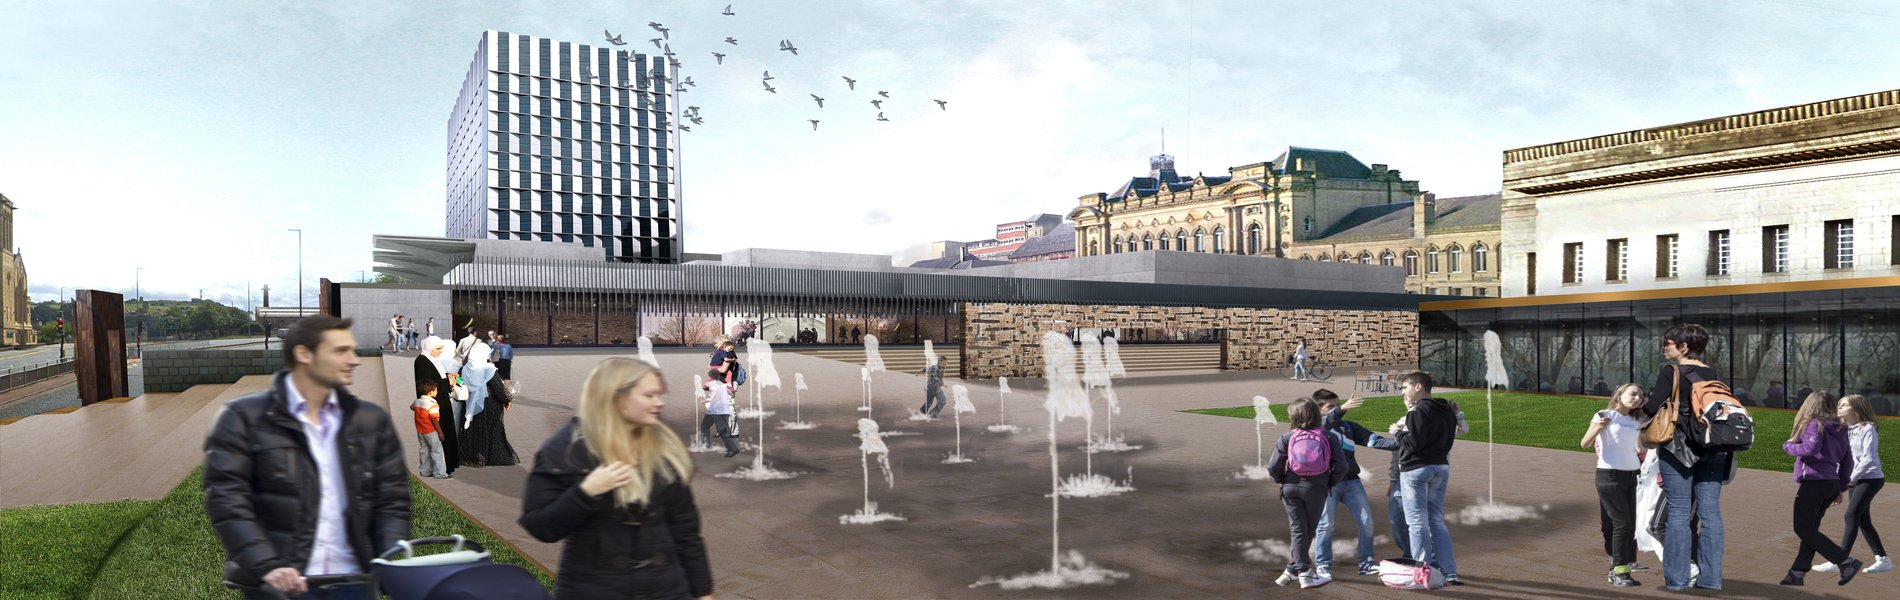 Artist impression of Queensgate Market from the Piazza